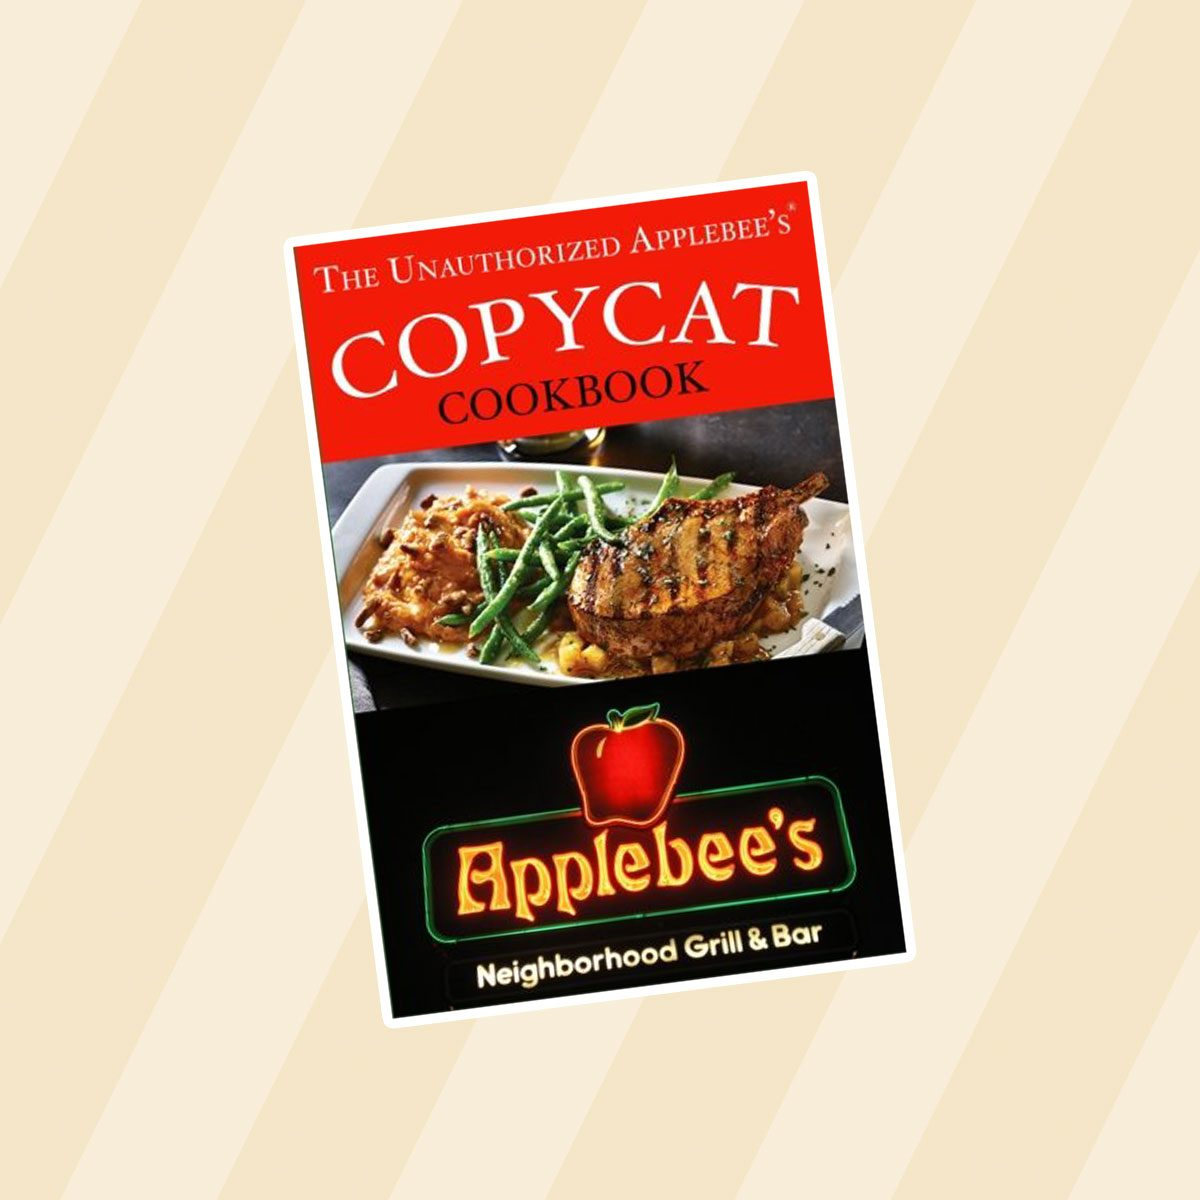 The Unauthorized Copycat Cookbook: Recreating Recipes for Applebee's Grill and Bar Menu